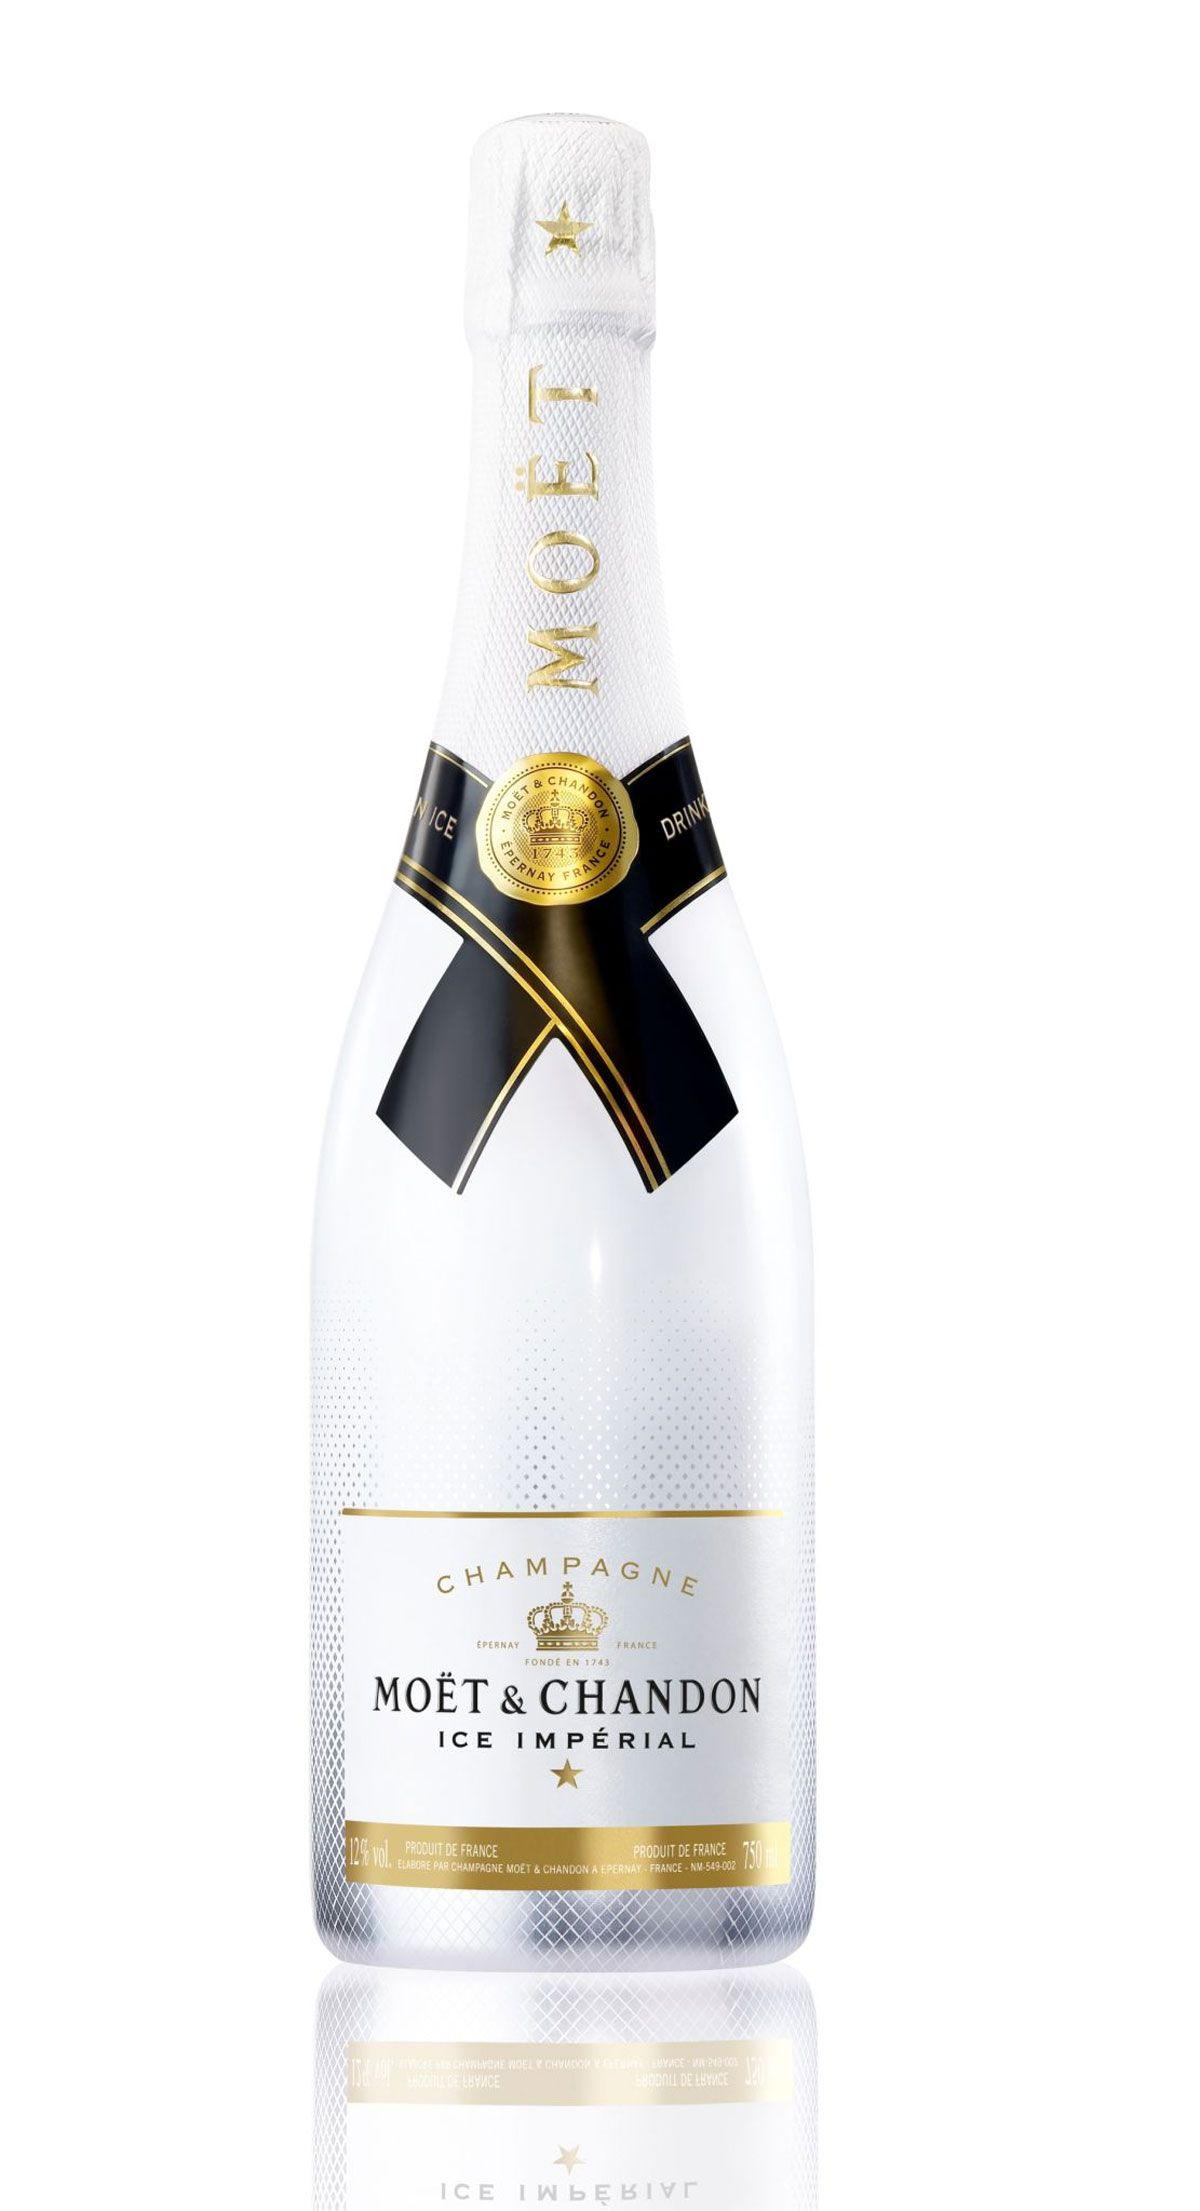 3afd9e3b71c993 Moet Chandon Ice Imperial Champagne ᘡղbᘠ